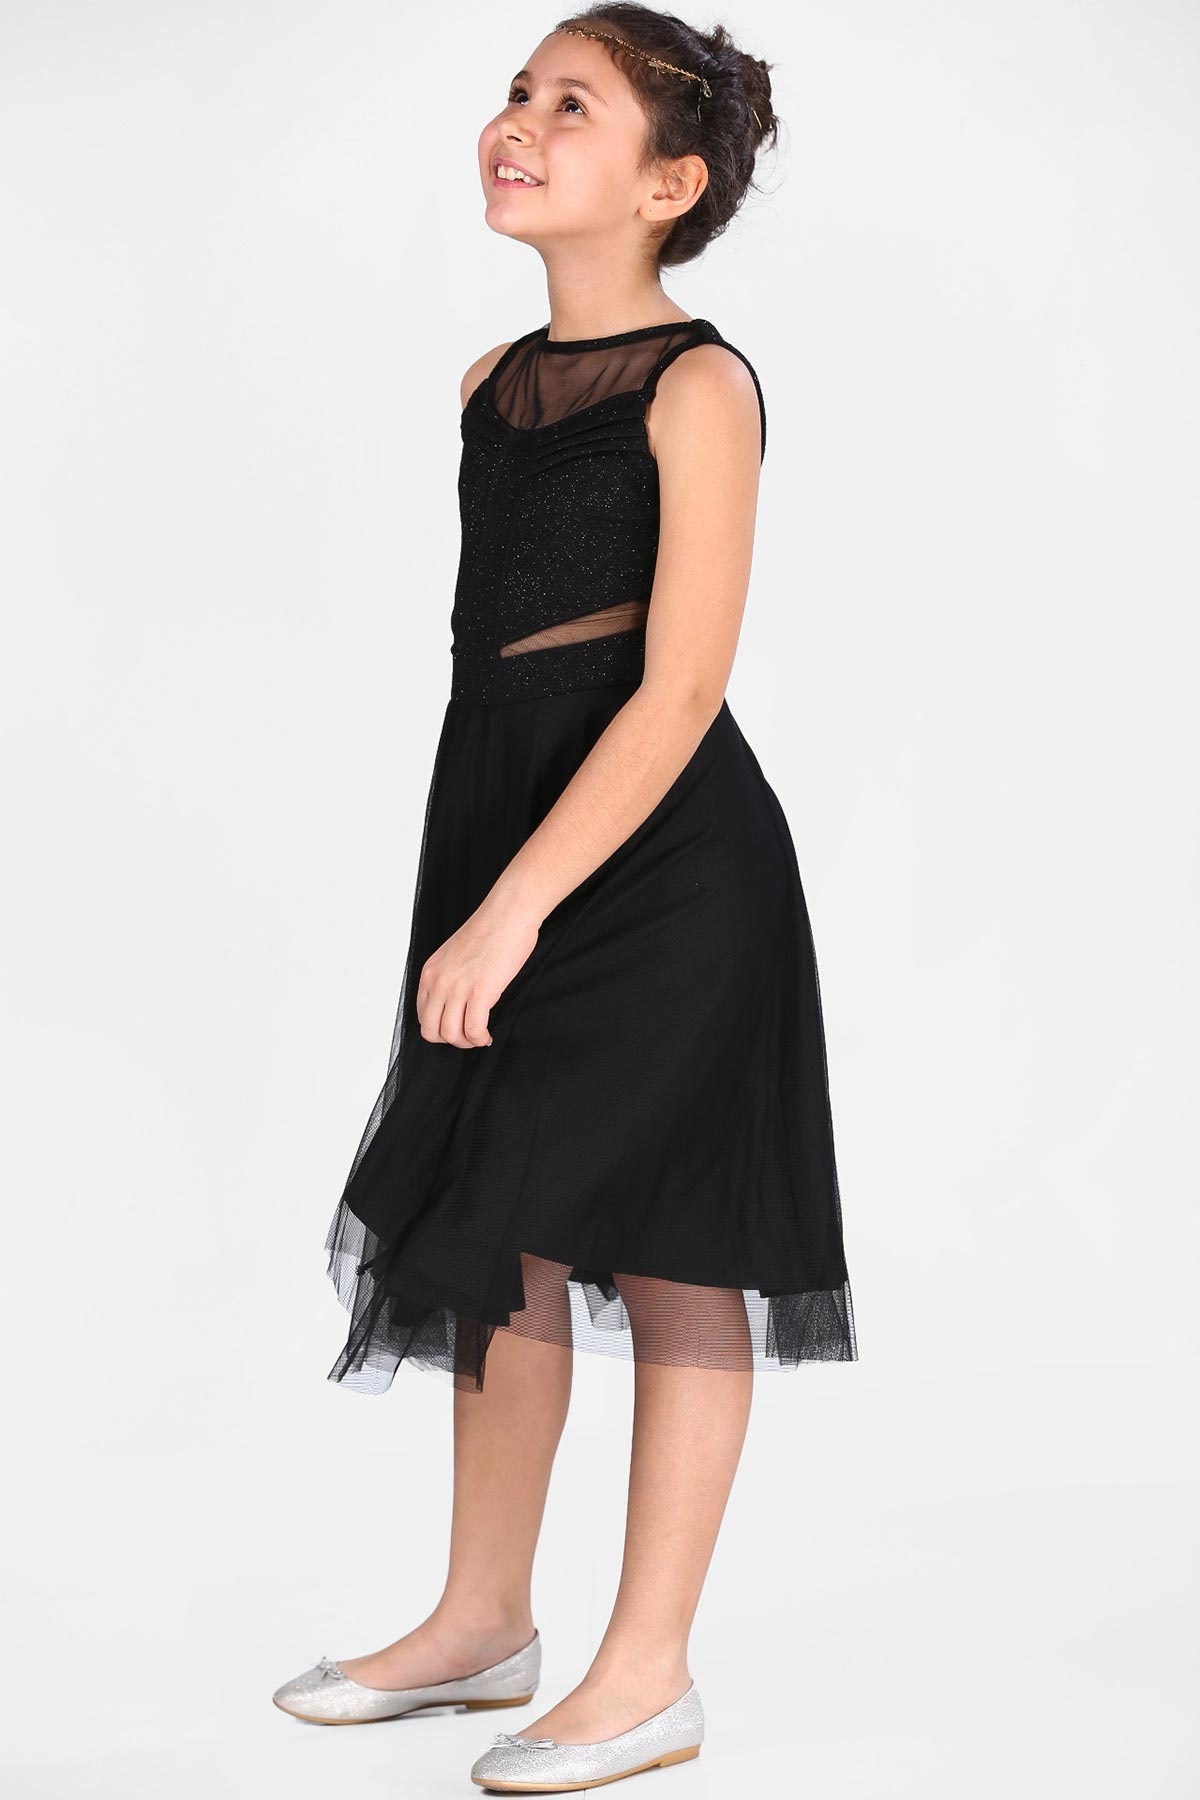 Girl's Tulle Silvery Black Evening Dress